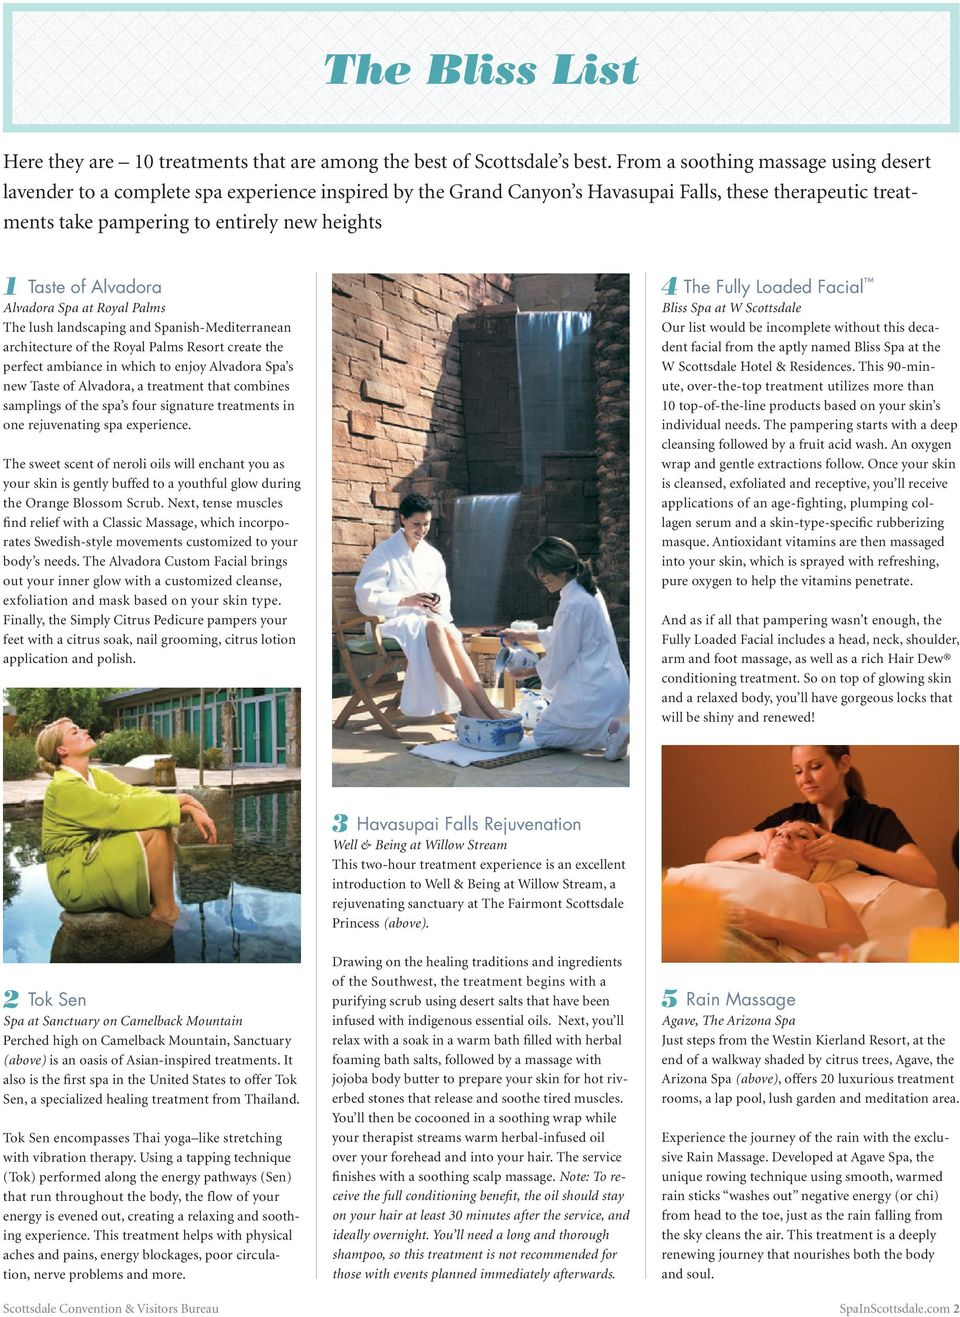 of Alvadora Alvadora Spa at Royal Palms The lush landscaping and Spanish-Mediterranean architecture of the Royal Palms Resort create the perfect ambiance in which to enjoy Alvadora Spa s new Taste of